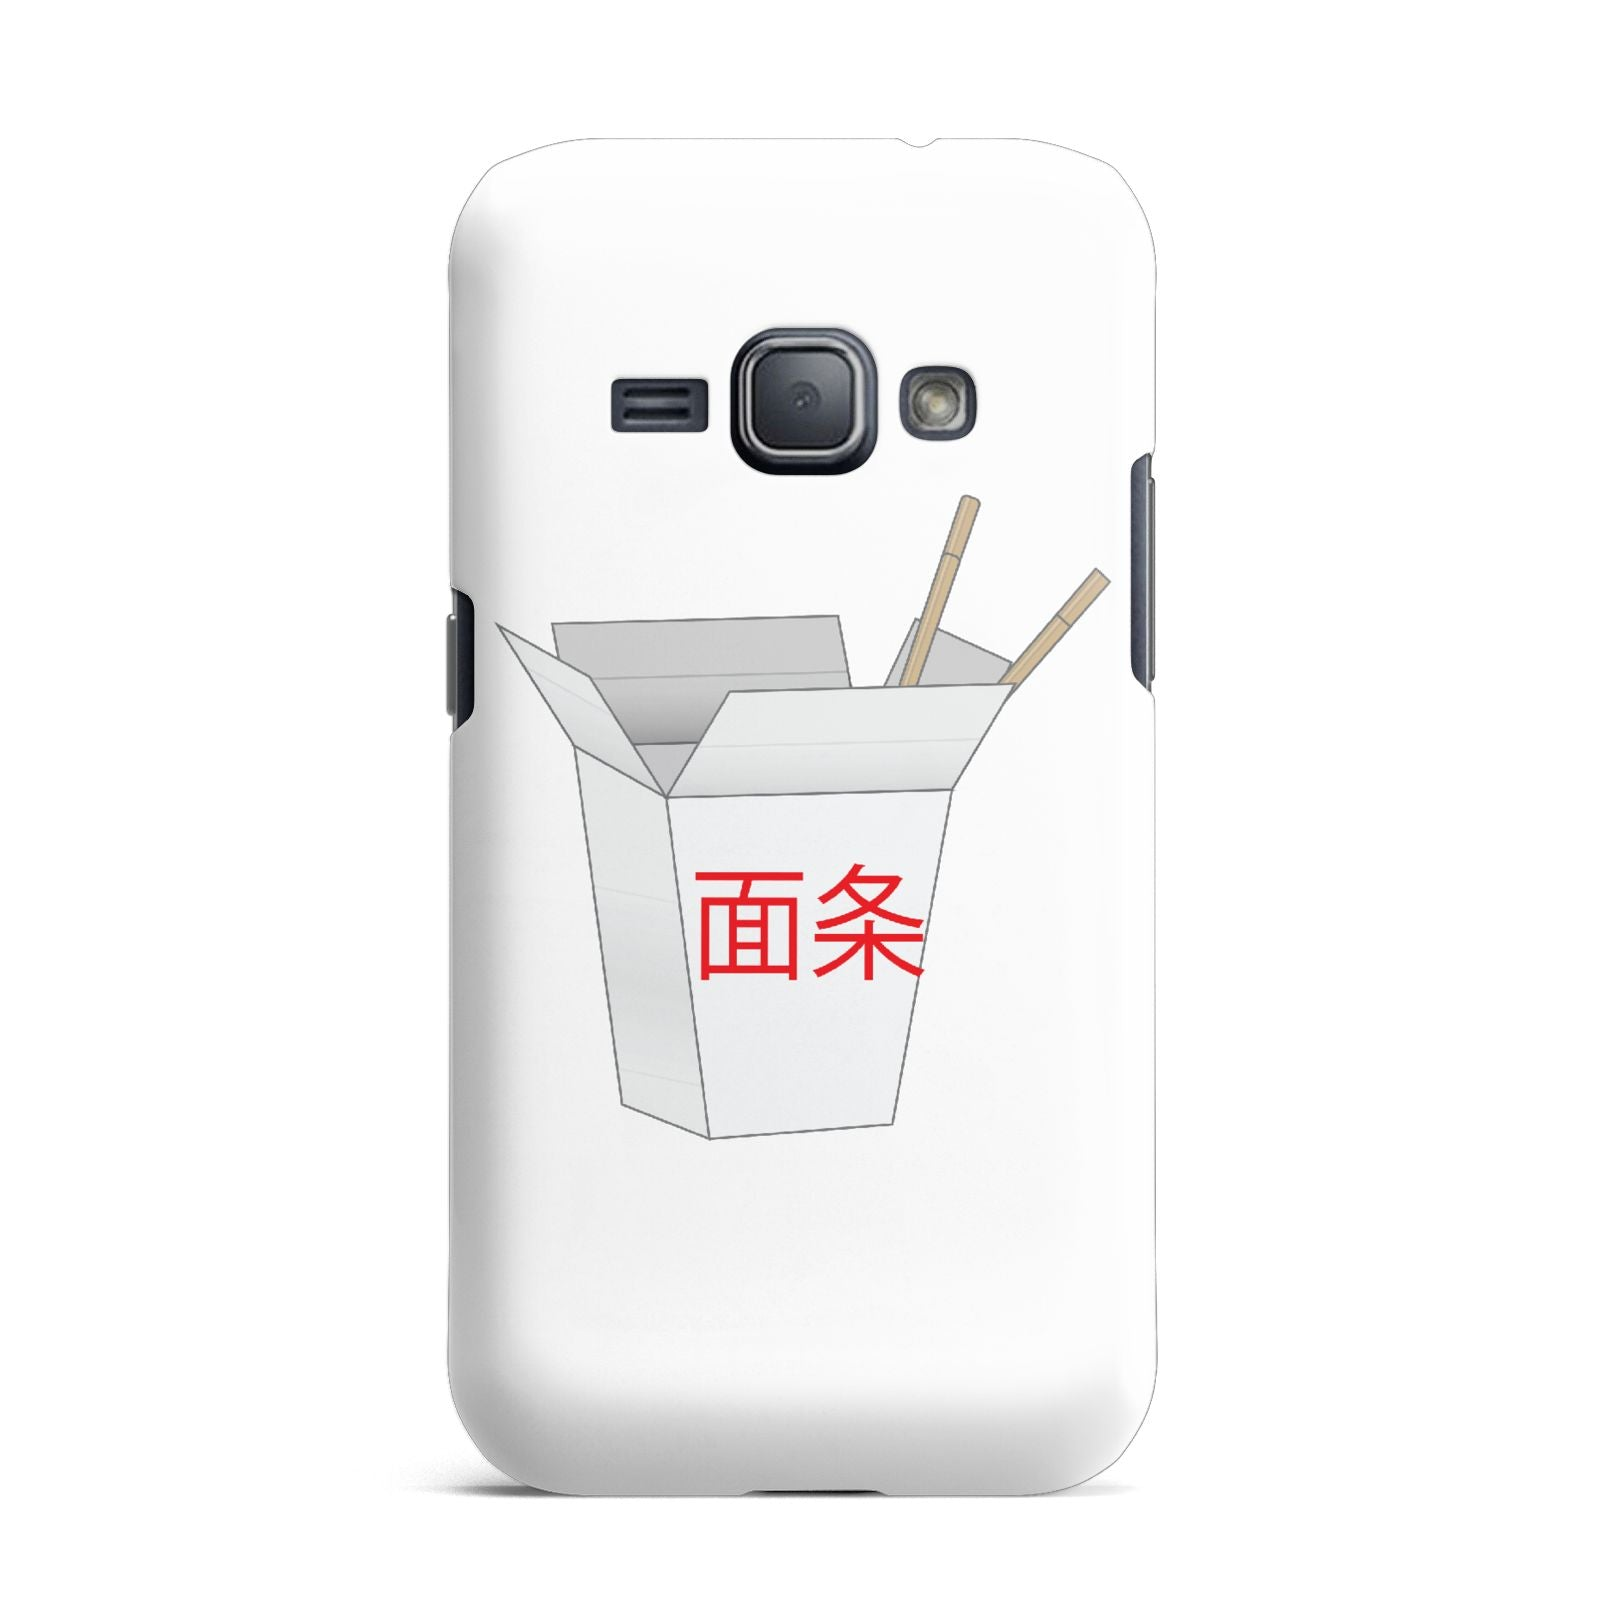 Chinese Takeaway Box Samsung Galaxy J1 2016 Case